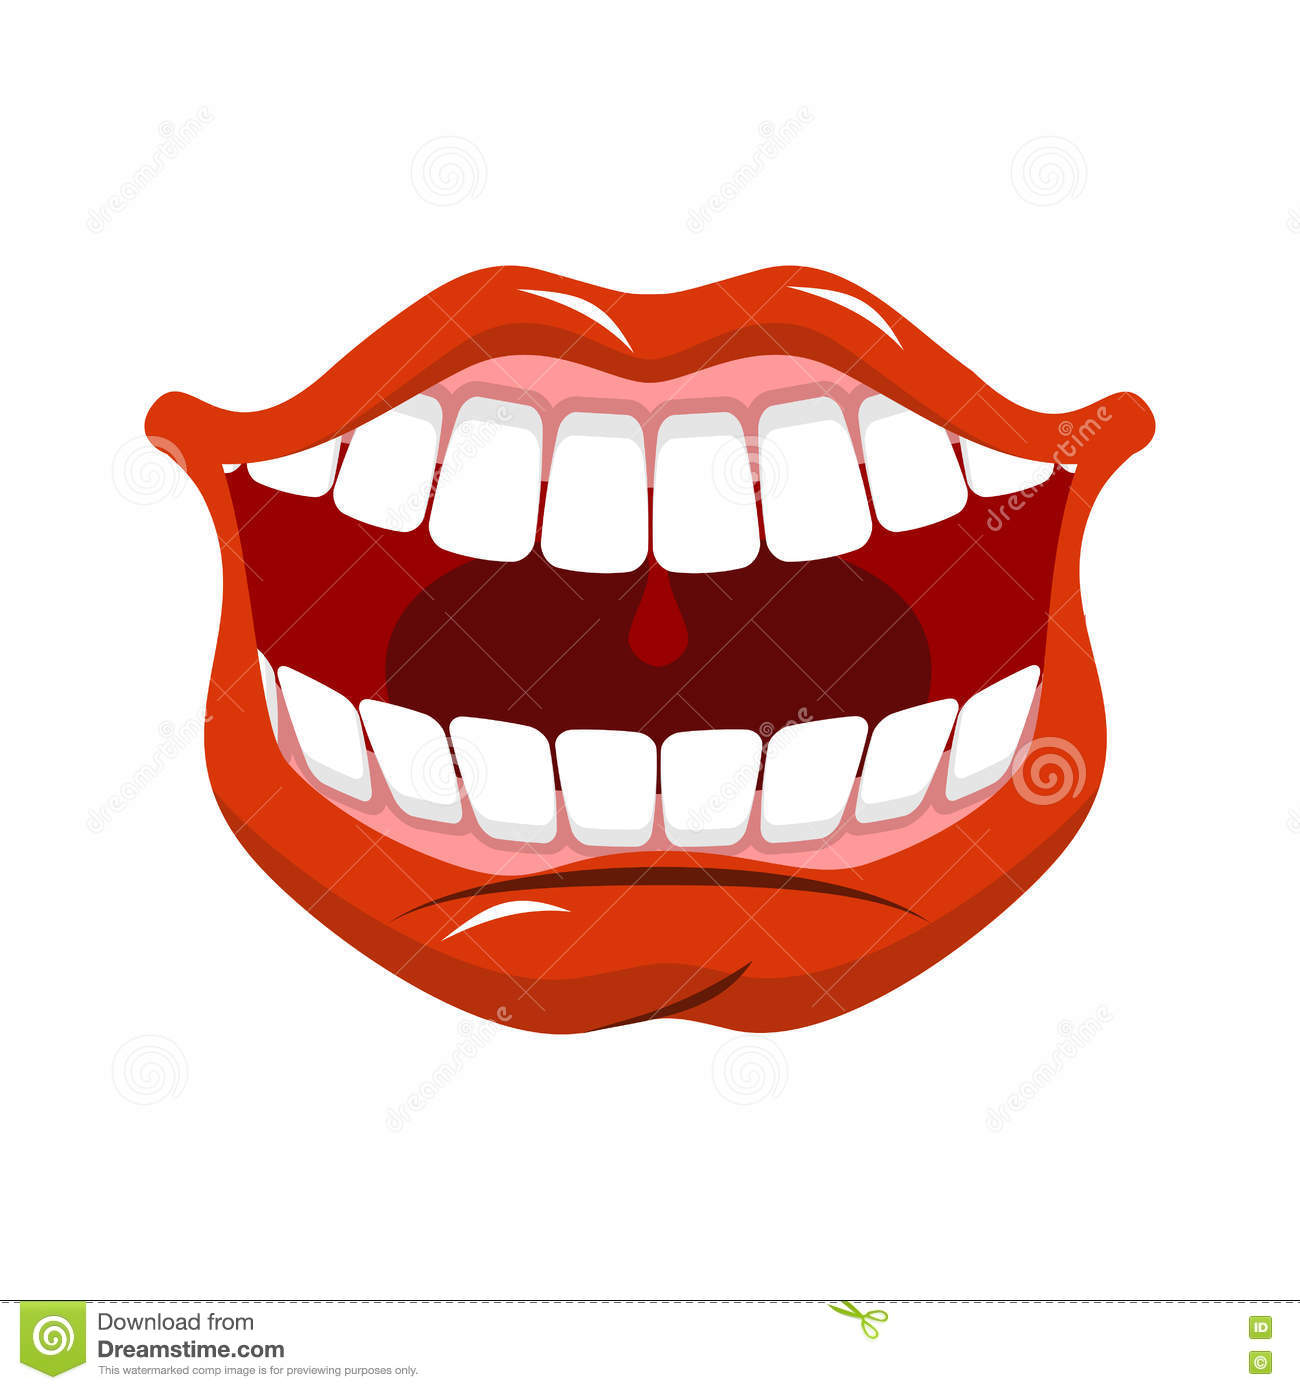 Abstract Vector Illustration Of Smiling Female Lips Vector 2153894 further Stock Illustration Cute Tiger Cartoon White Background Image43197344 moreover Happy 6th Birthday Border Clipart moreover Stock Images Crab Detailed Illustration White Background Image31912174 moreover Guilty Emoticon Apologetic Scratching His Head 478133329. on cartoon smile mouth clip art